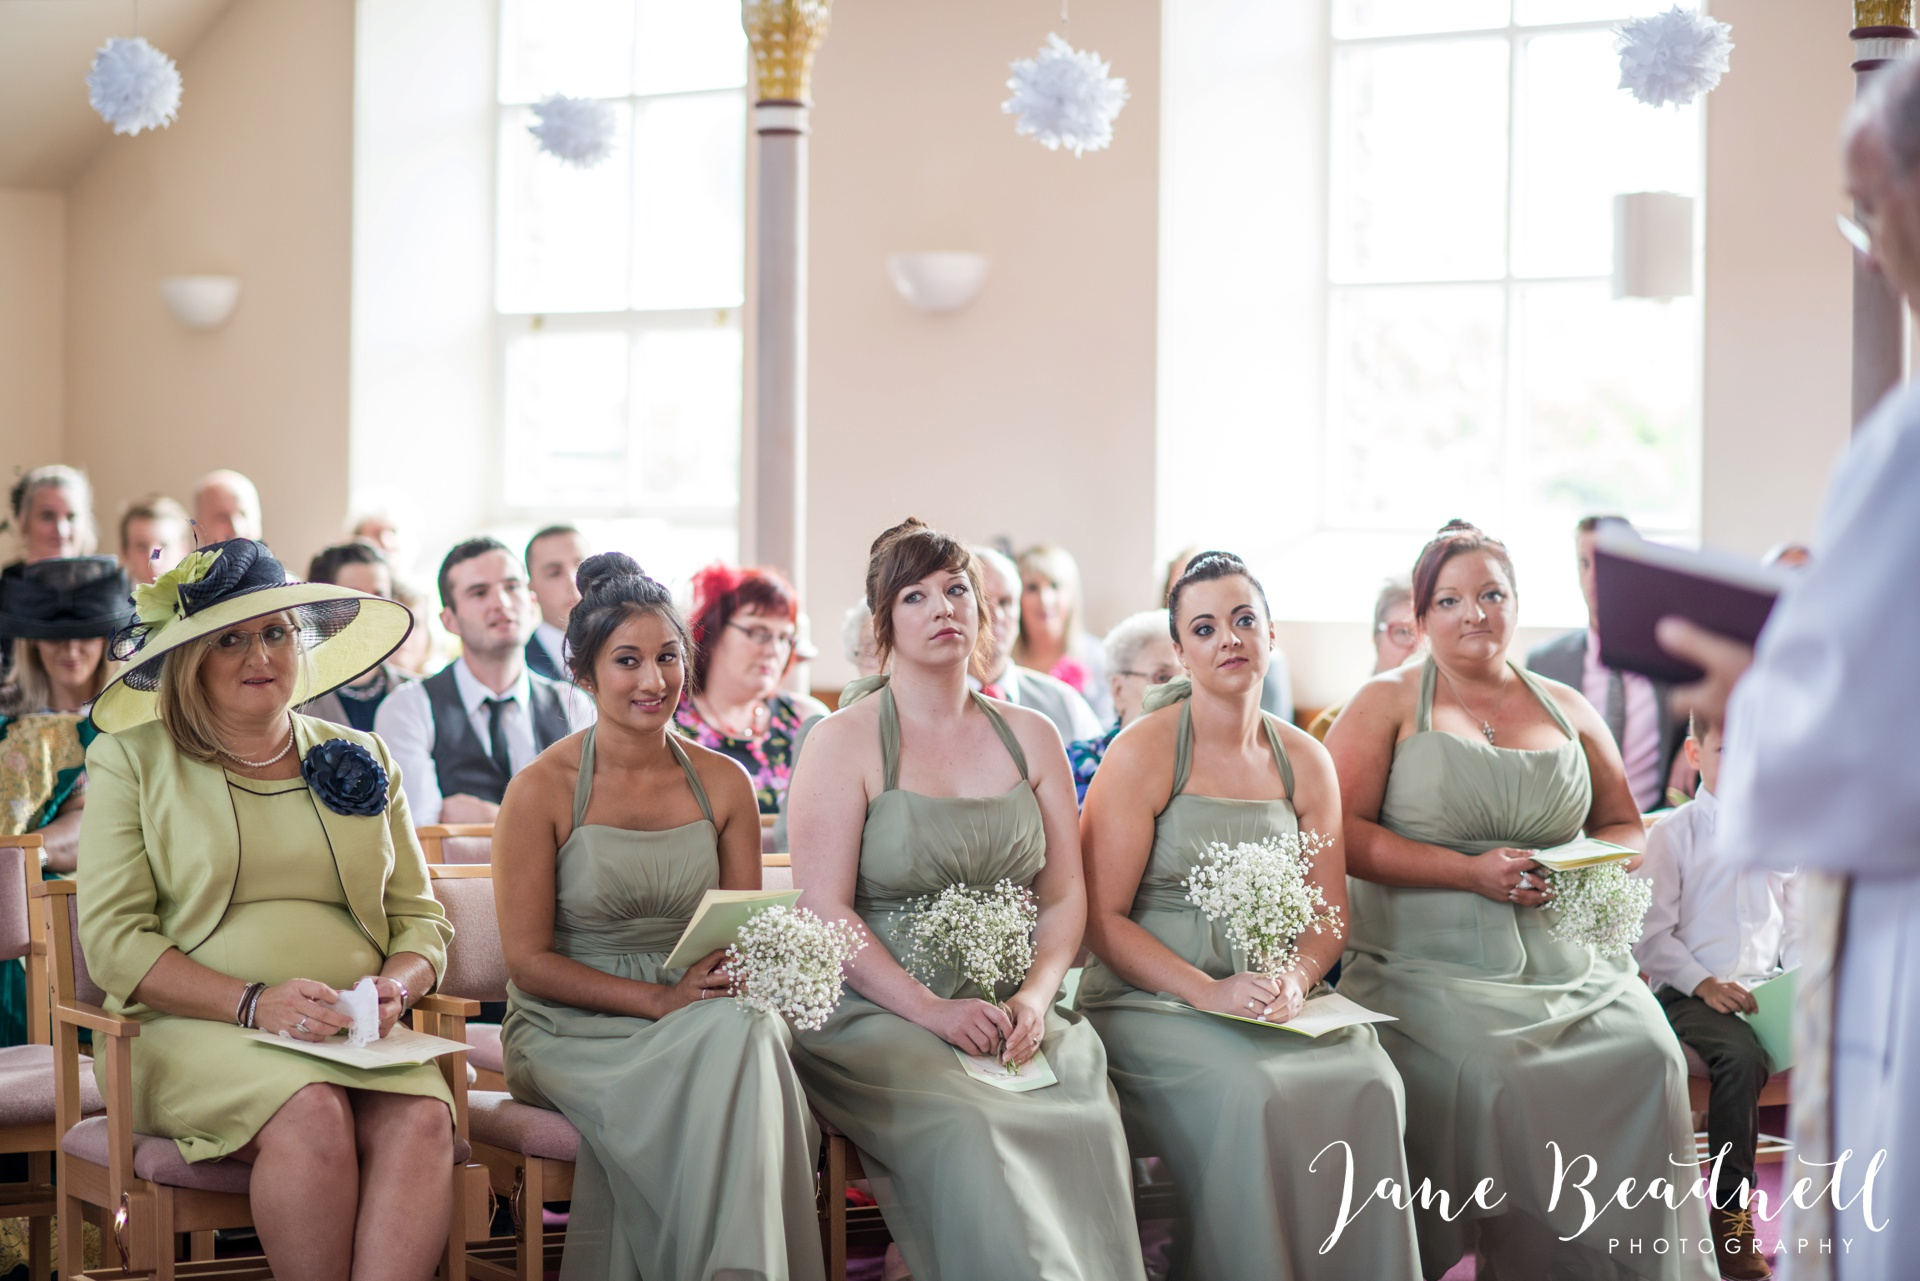 Jane Beadnell fine art wedding photographer The Old Deanery Ripon_0032